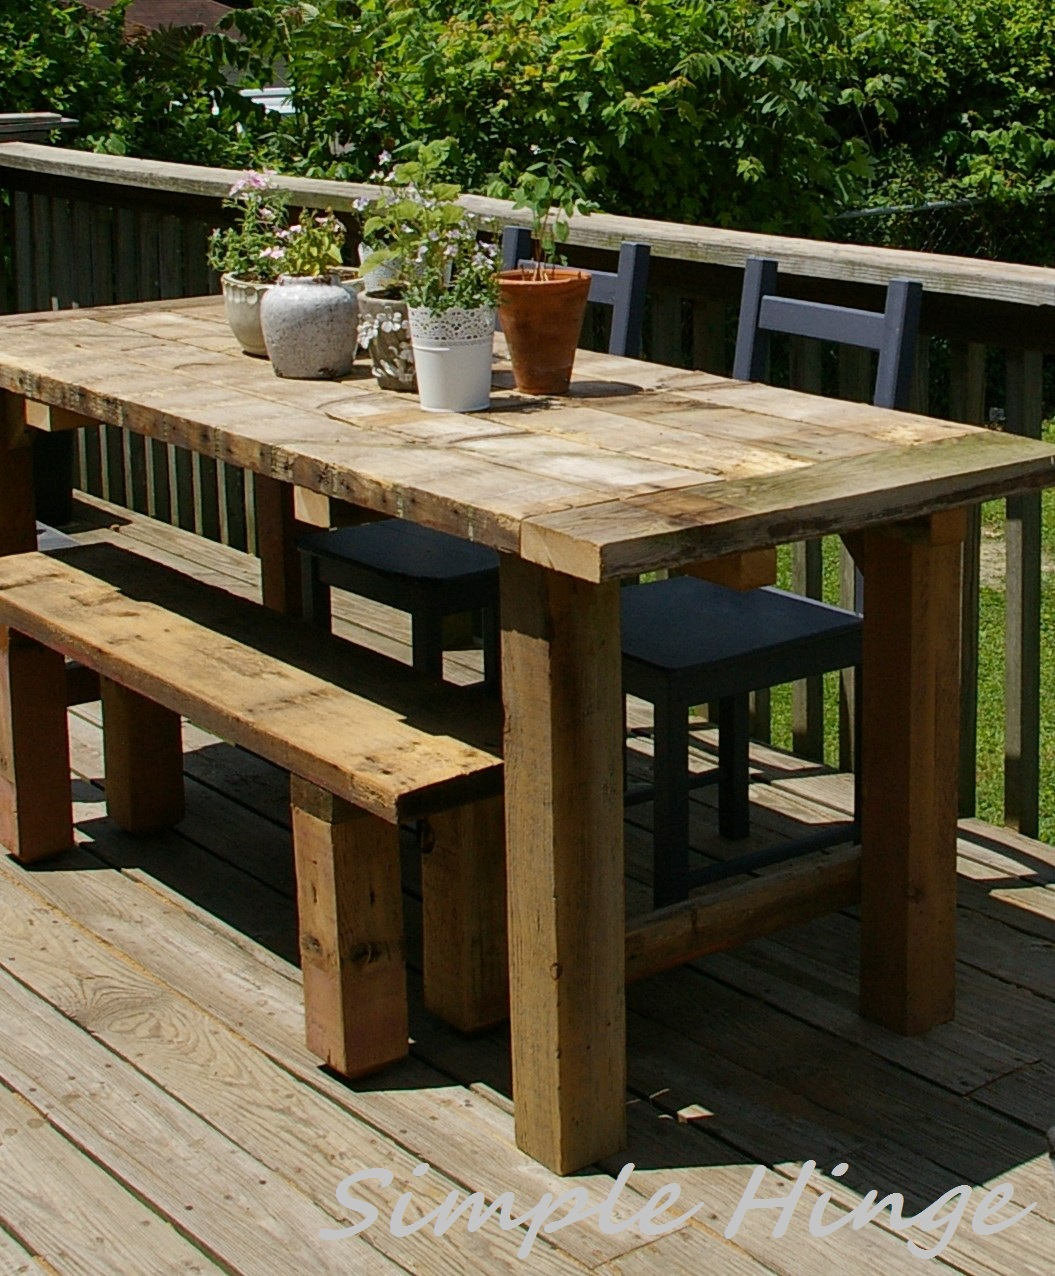 Rustic Outdoor Table  Simple Hinge Llc. Dresser With Different Colored Drawers. Gaming Table Plans. Grey Dining Room Table. Laundry Room Tables. Desk Exercises For Abs. Ikea Expanding Table. 60 Inch Round Patio Table. Creative Office Desk Accessories